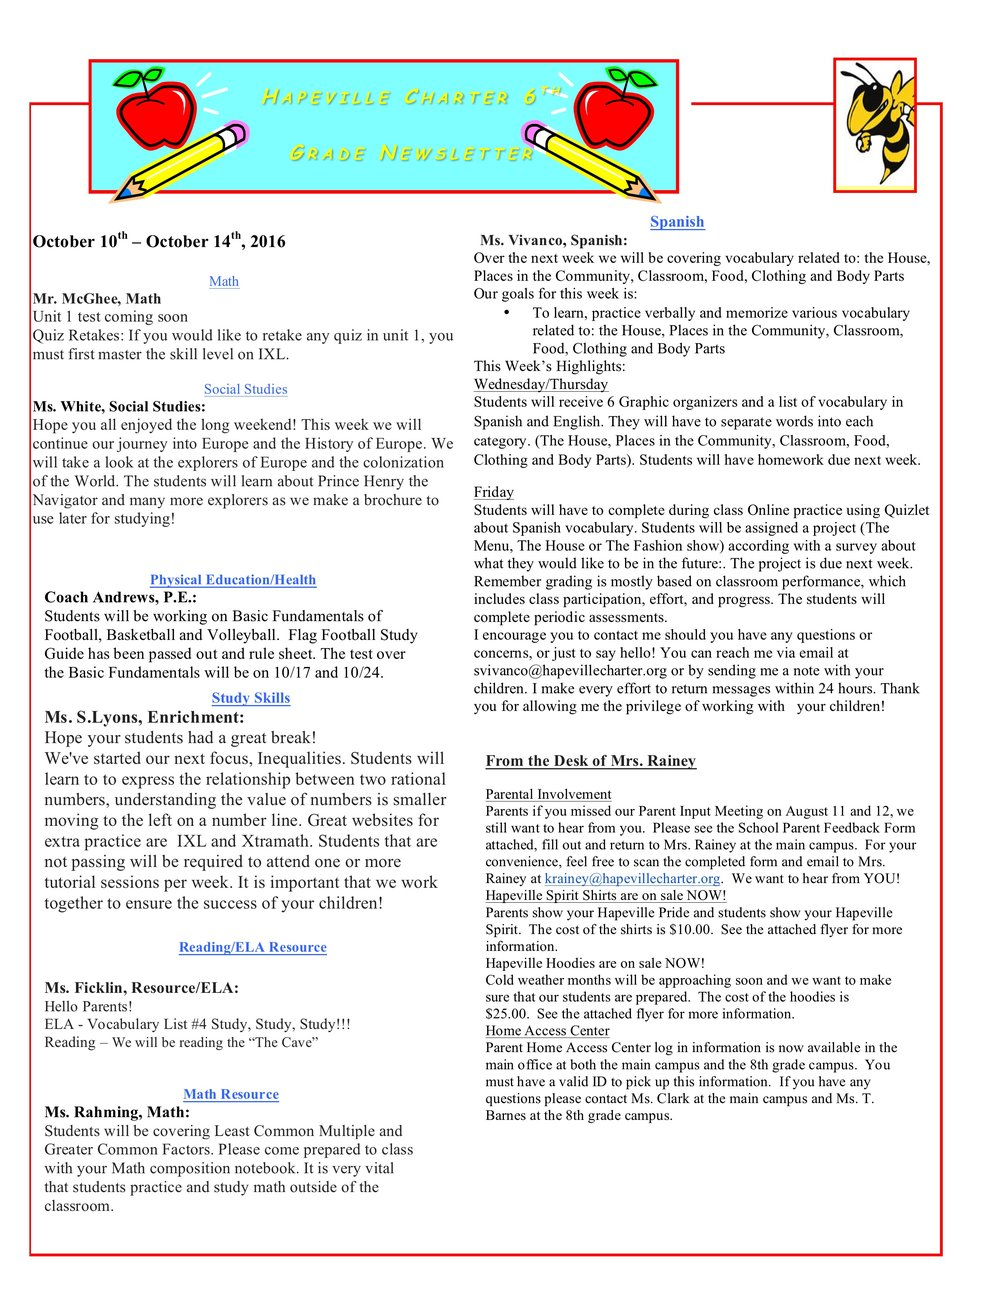 Newsletter Image6th Grade Newsletter 10.10.2016.jpeg